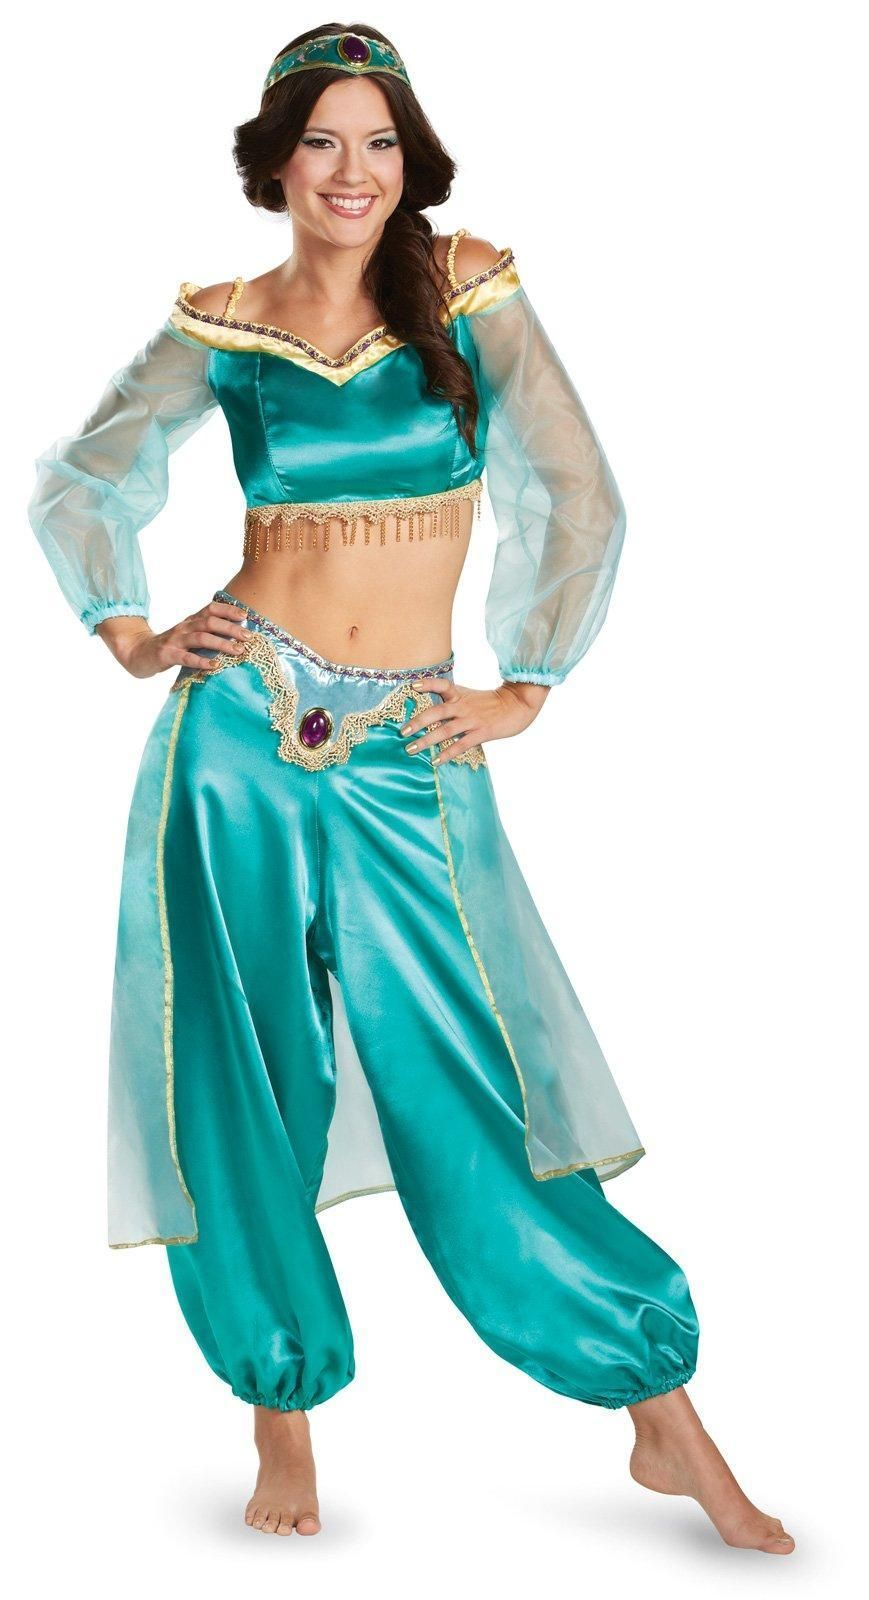 Disney Princess Jasmine Fab Prestige Adult Costume  Disney princess